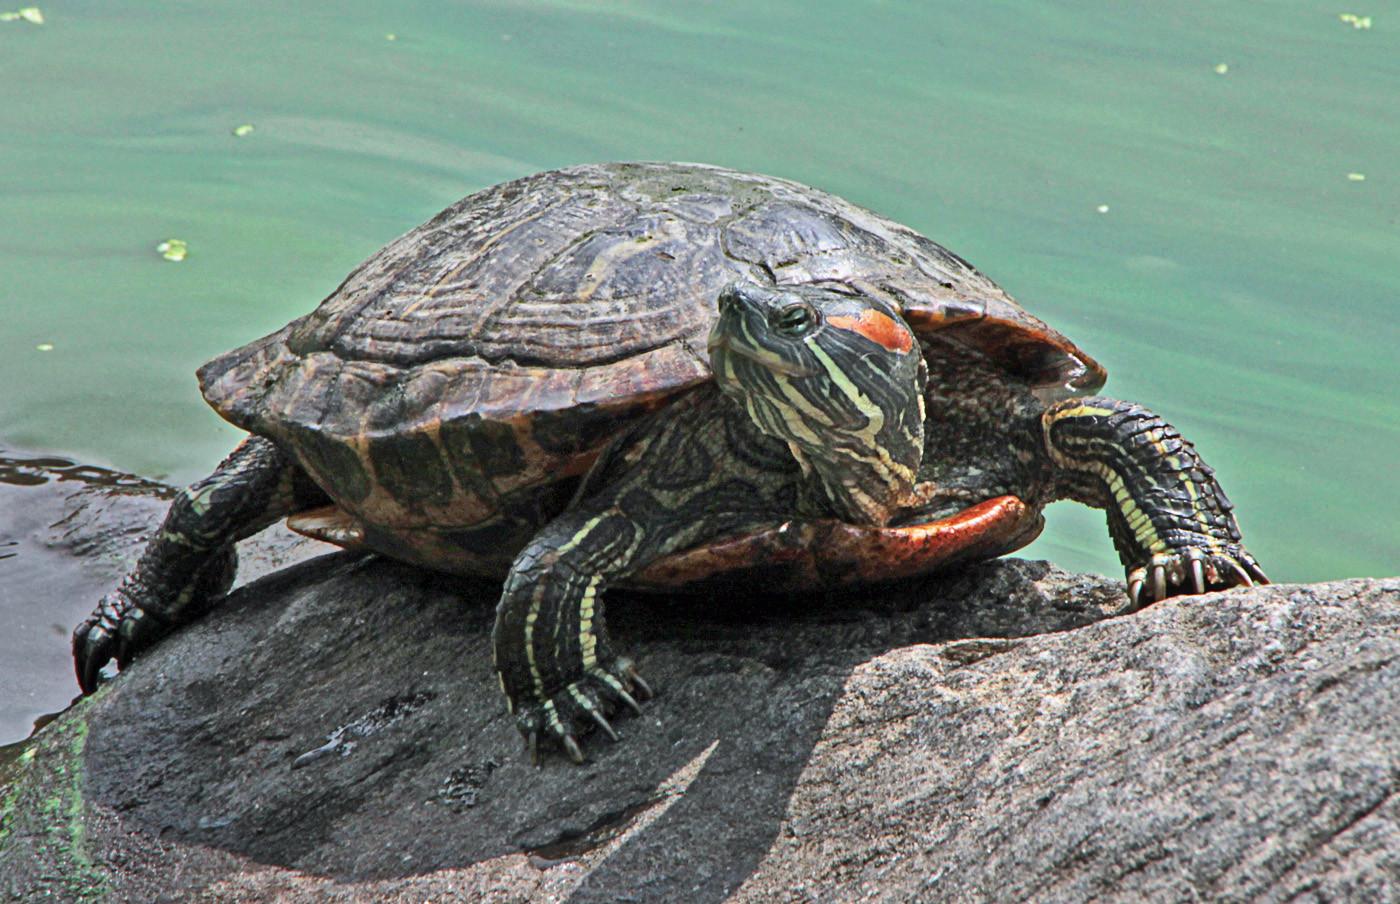 13 RED EARED SLIDER by Pam Sherren